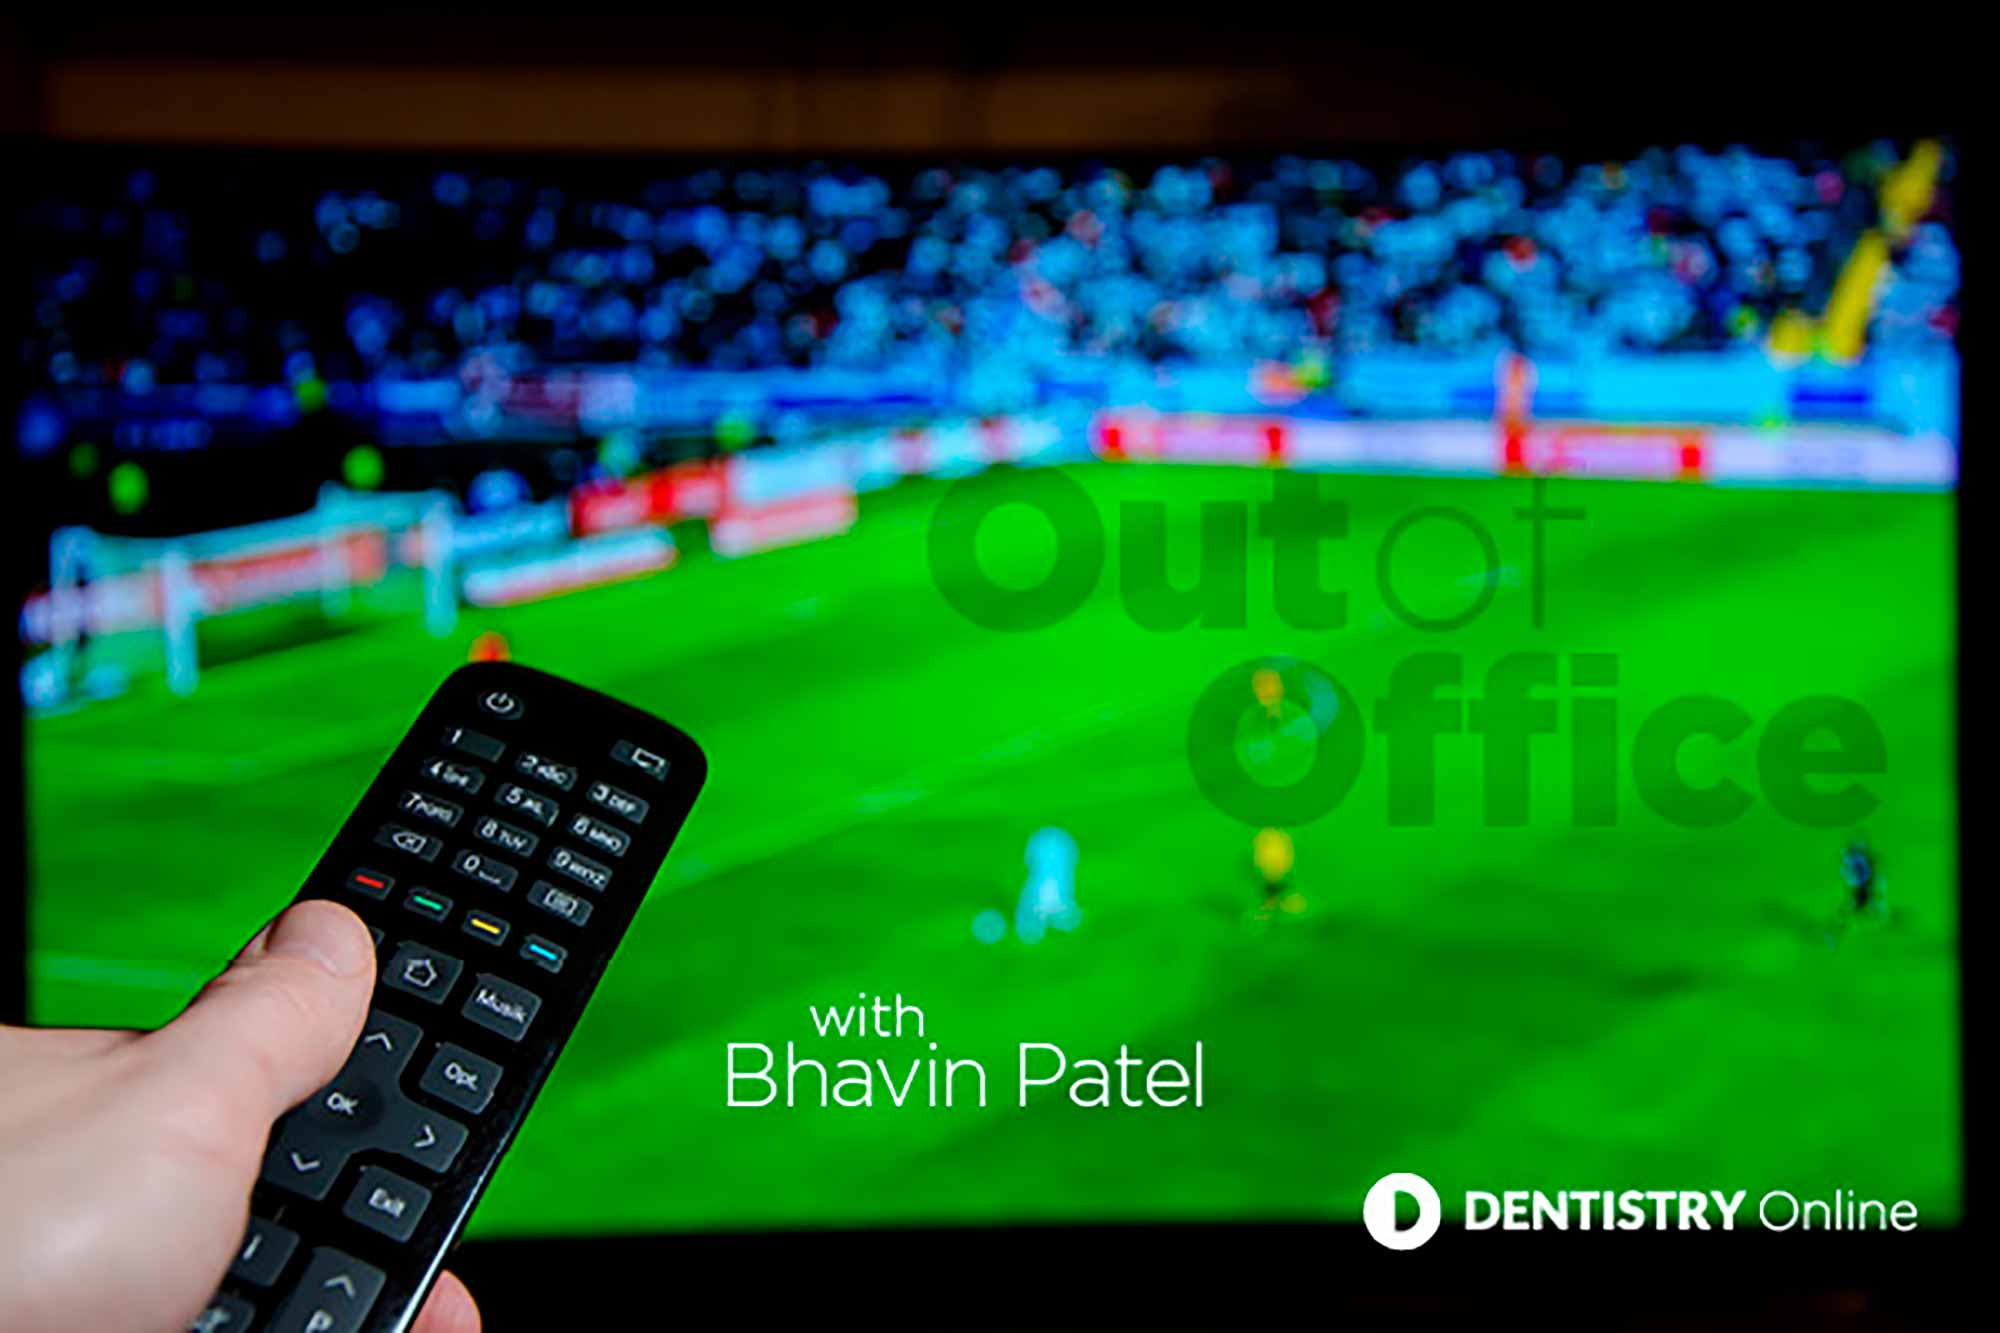 Bhavin Patel on watching TV